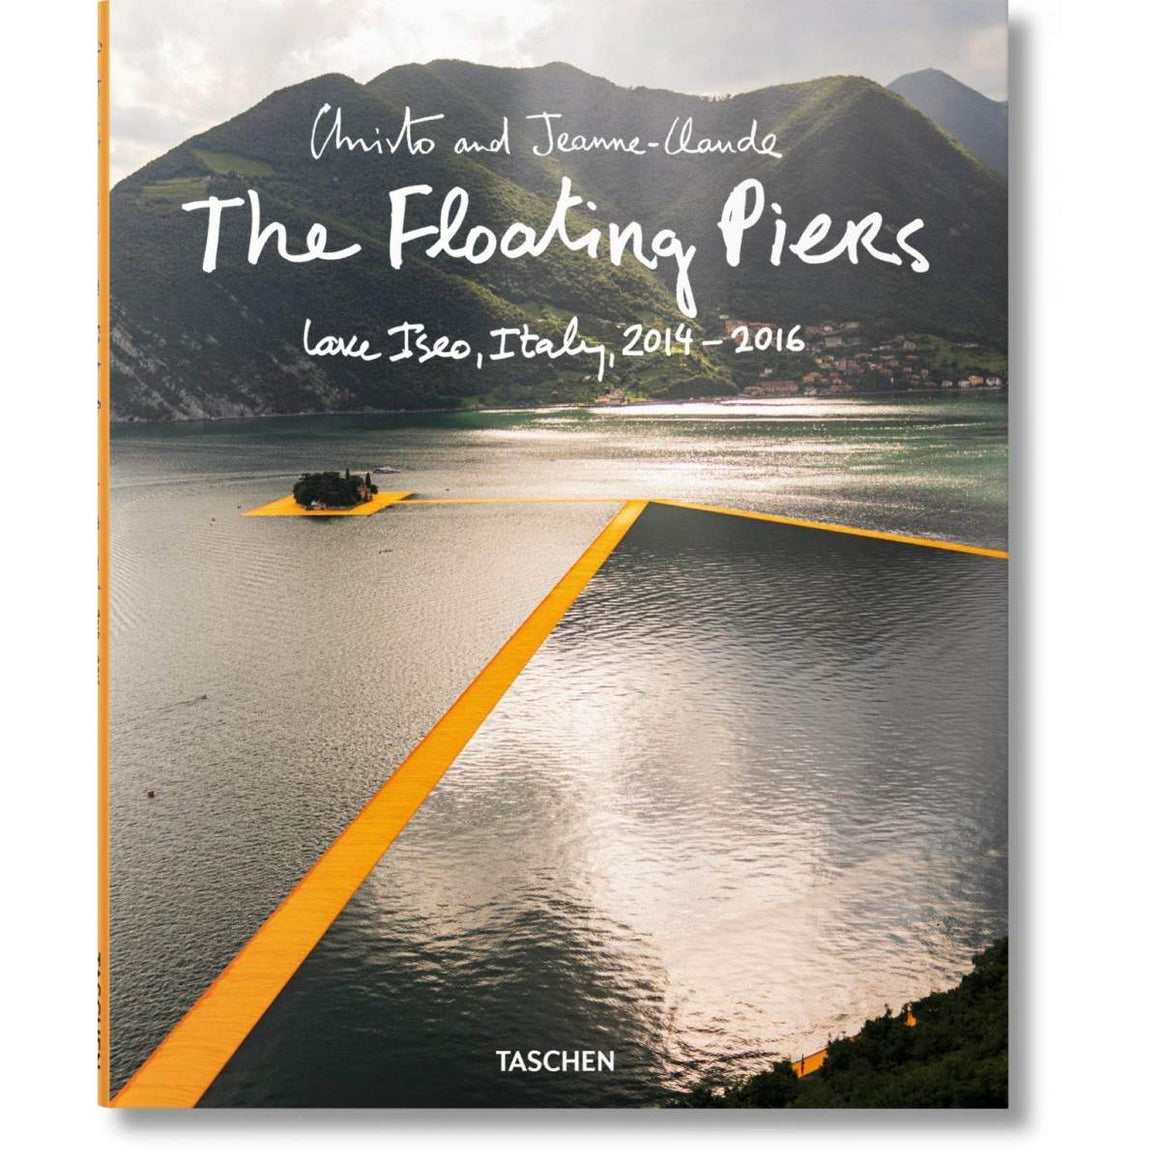 The Floating Piers: Christo and Jeanne-Claude | Author: Jonathan William Henery